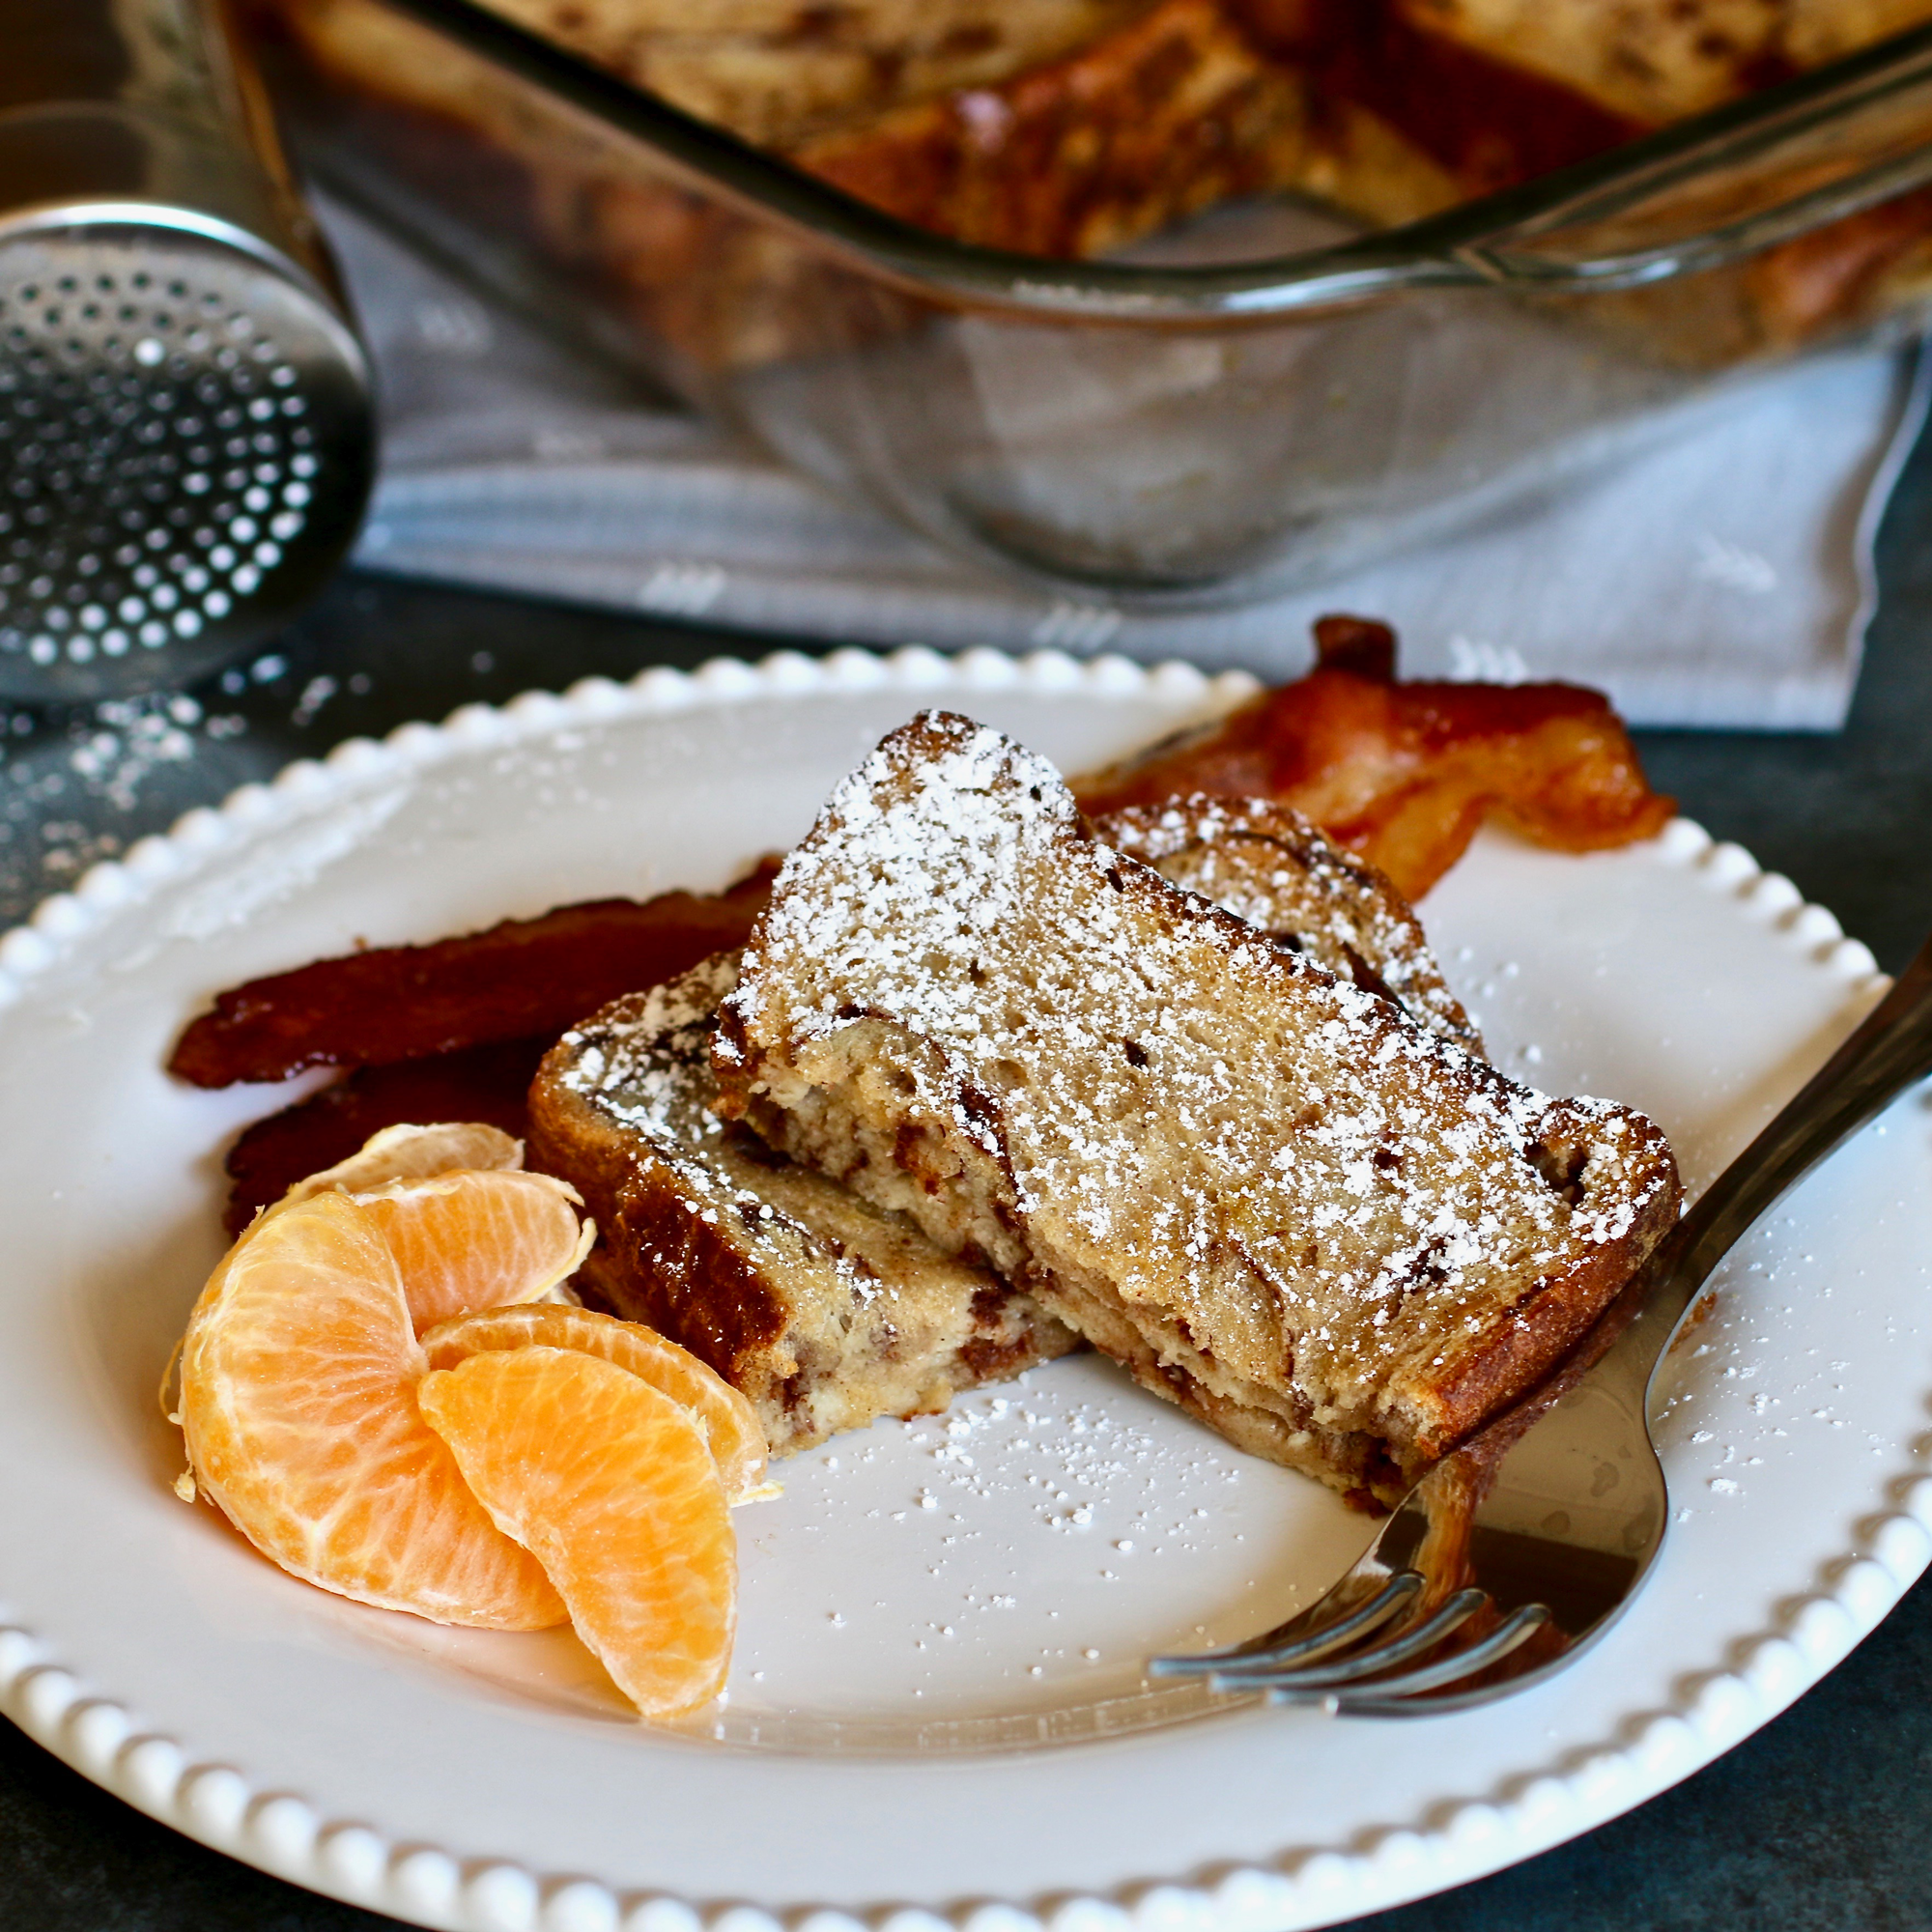 Cinnamon Swirl French Toast Casserole on a plate with a bacon slice and orange slices